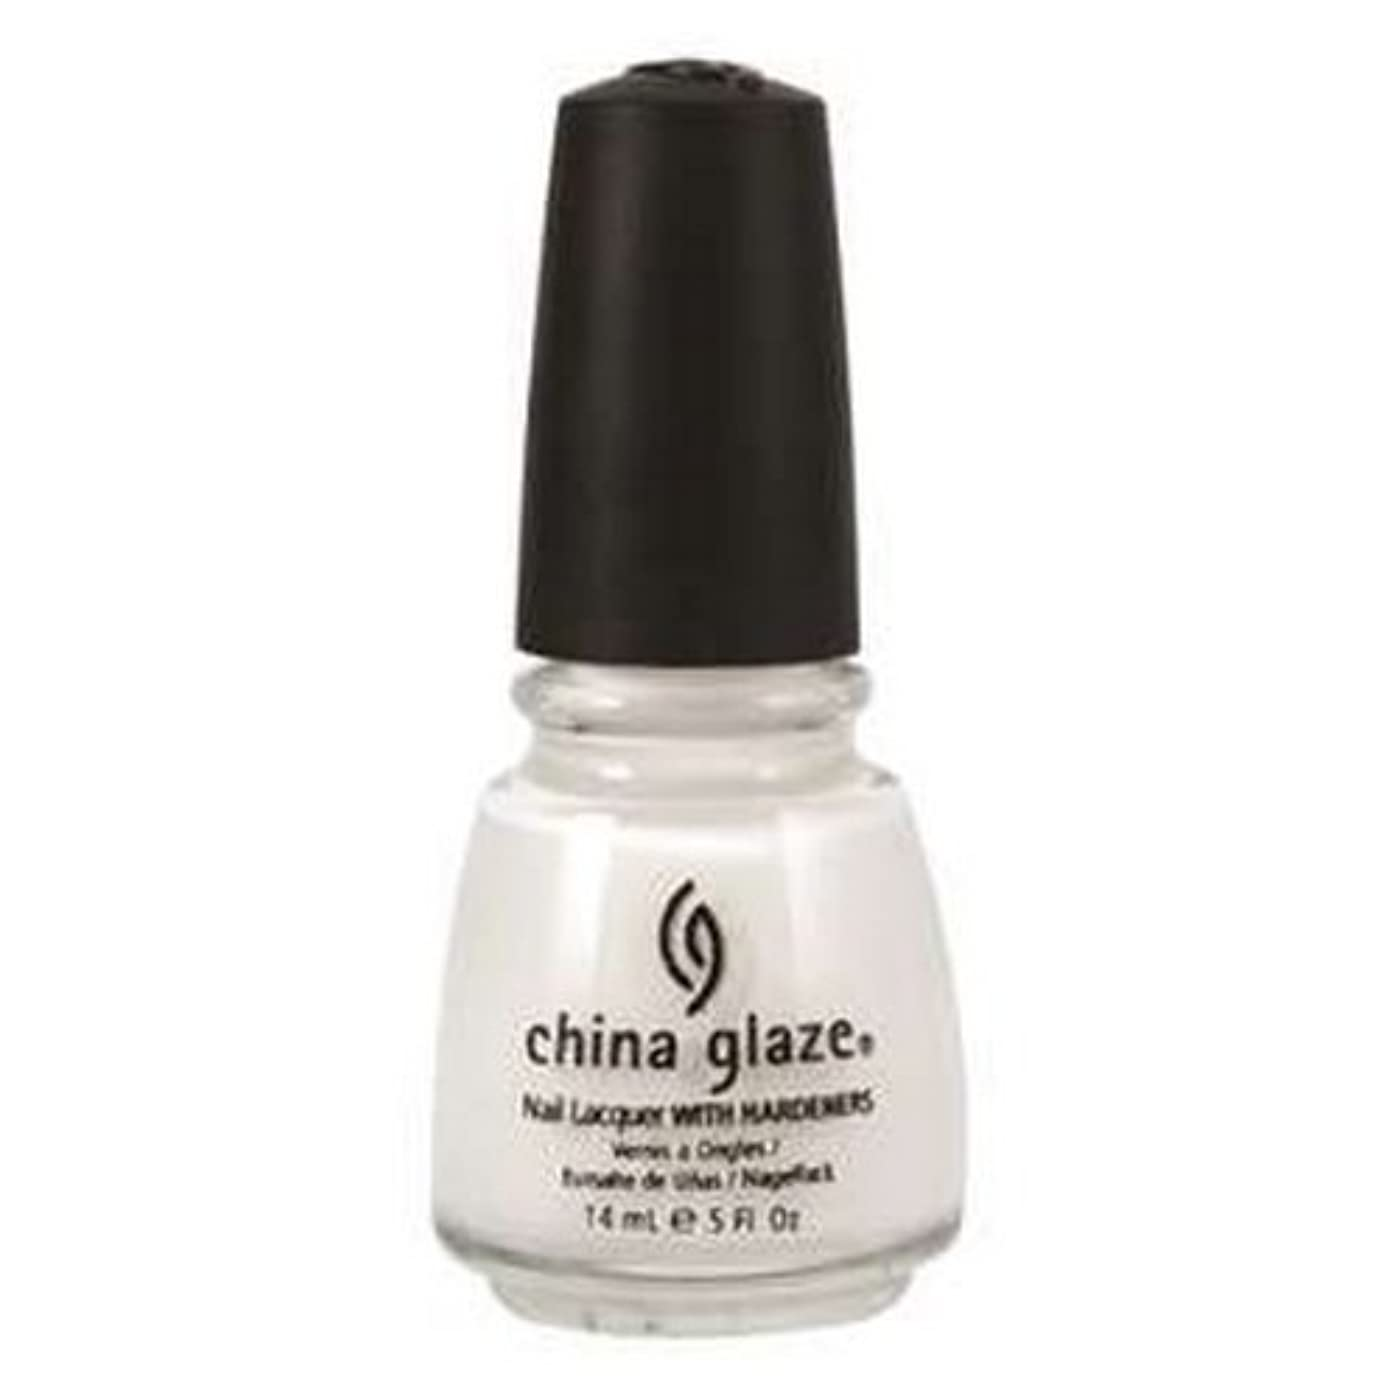 推進力実現可能性聞く(6 Pack) CHINA GLAZE Nail Lacquer with Nail Hardner 2 - Snow (並行輸入品)